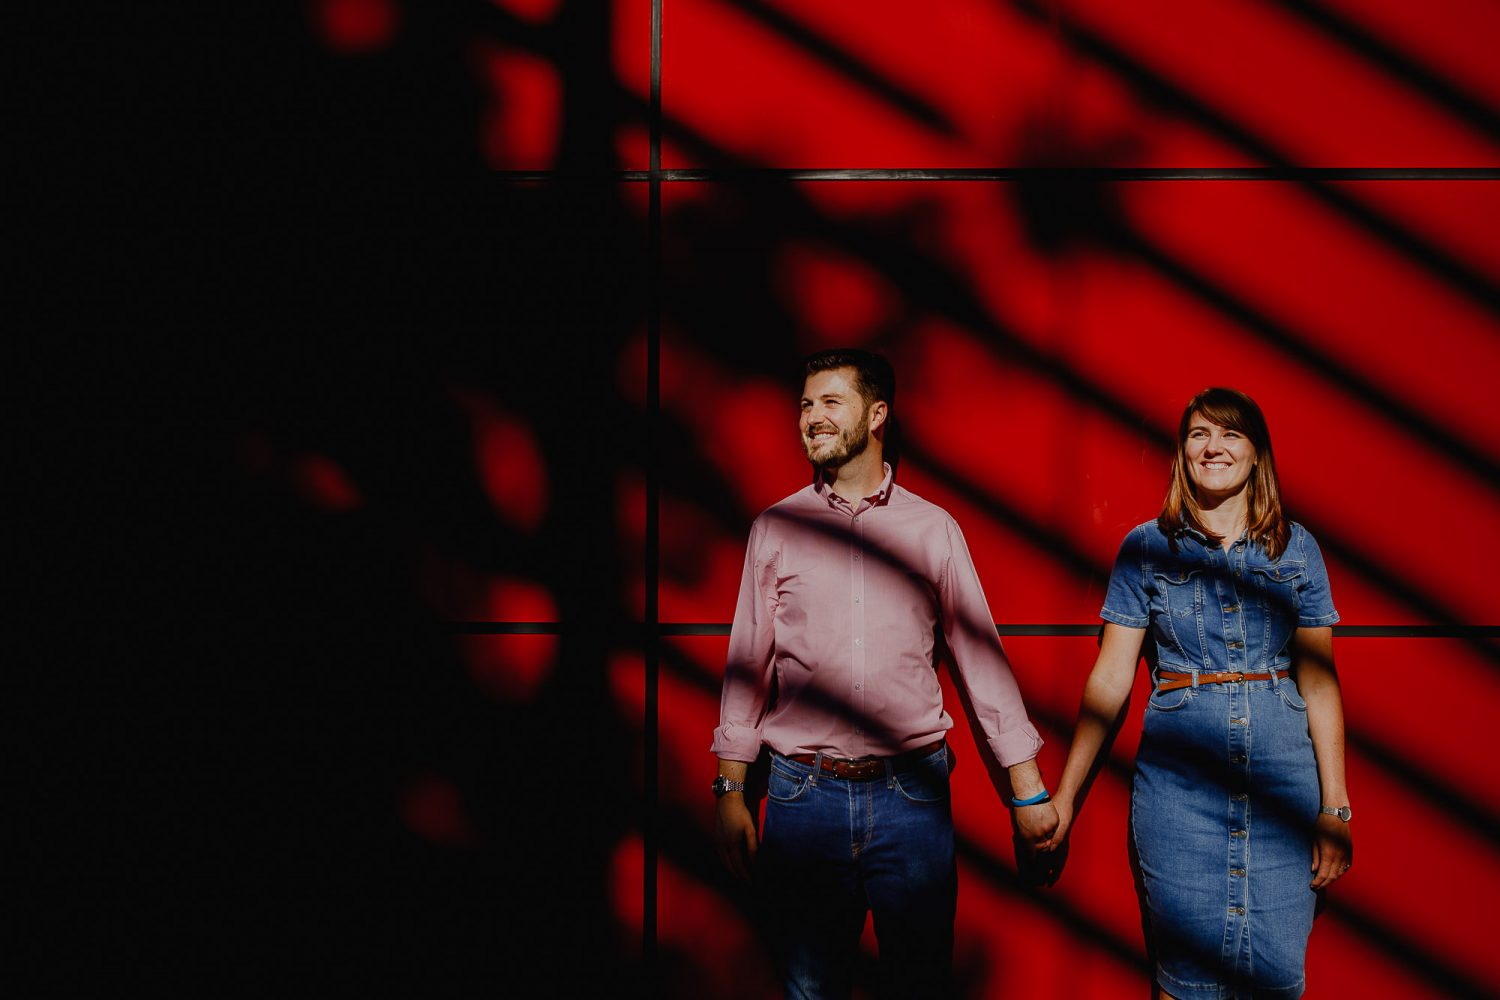 London pre-wedding portrait of couple against a vibrant red wall.